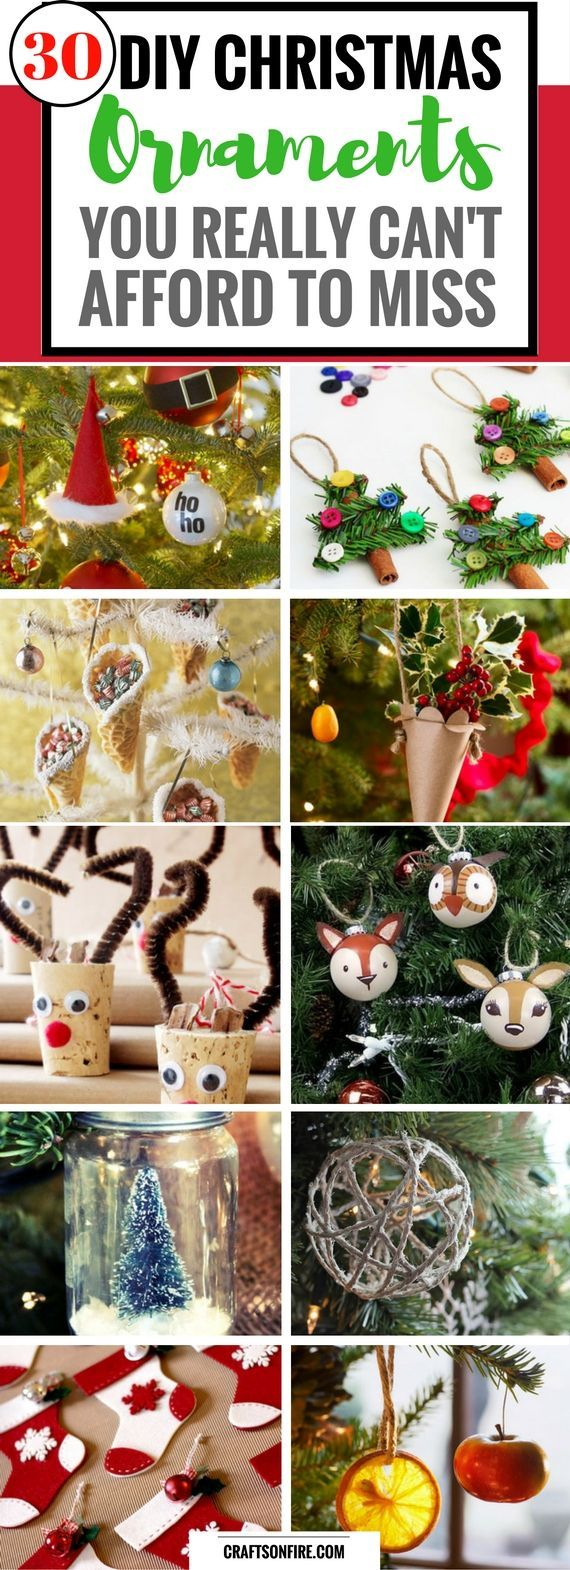 Ready for Christmas yet? If you're looking for diy projects to decorate your home this Christmas then you have to check out this AWESOME list of diy Christmas Ornaments. The wooden slates and snow globes are EPIC!